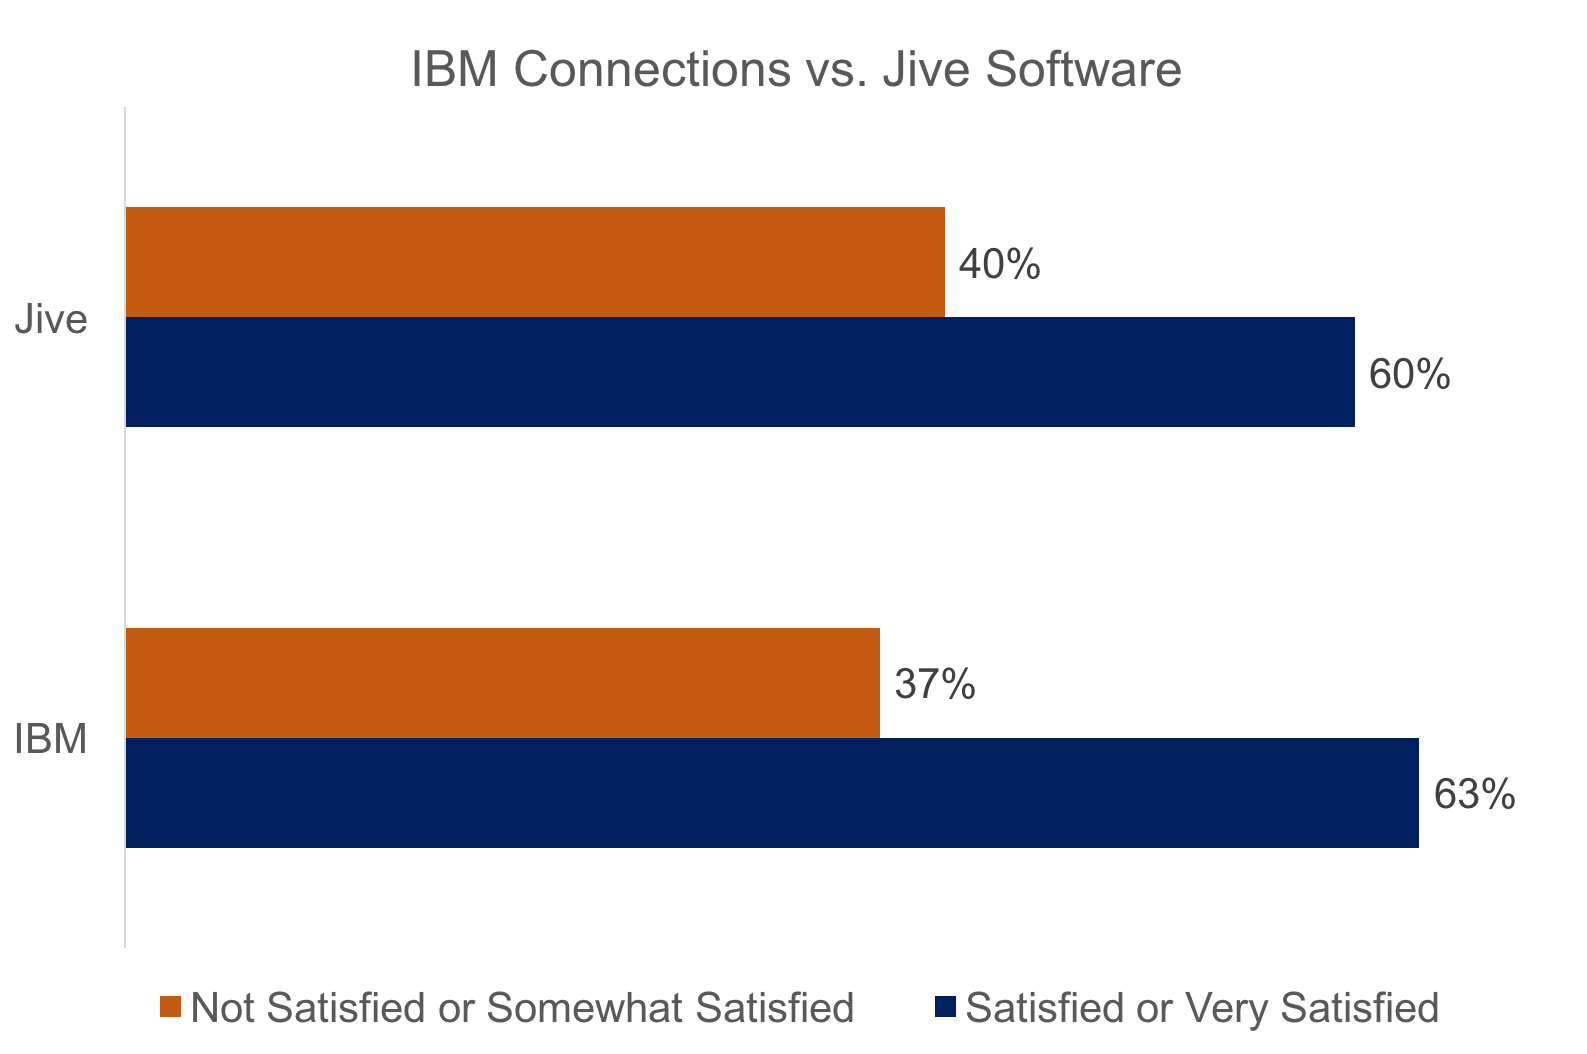 Customer Satisfaction ratings for IBM Connections and Jive Software